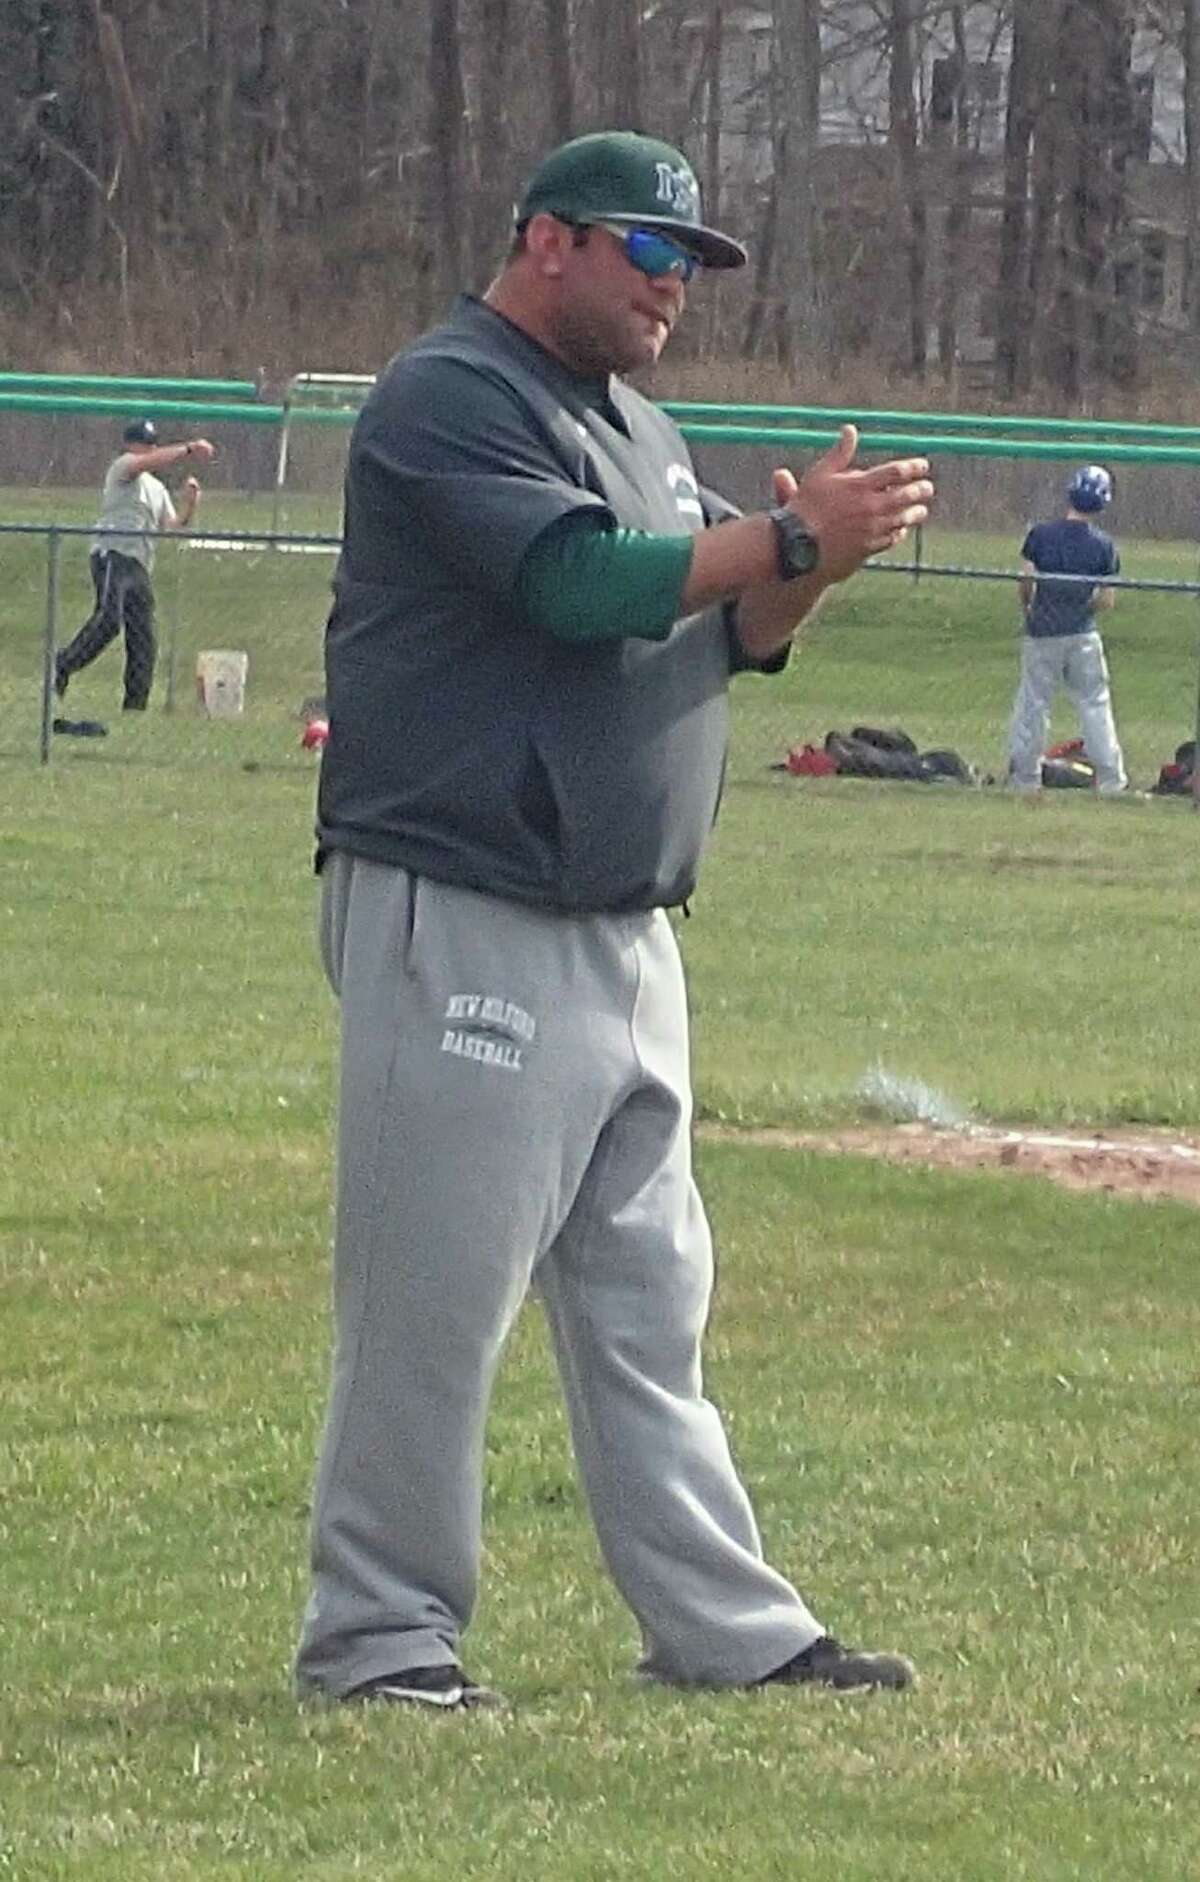 New Milford baseball coach Ryan Johnson encourages one of his hitters from the third-base coach's box during the Green Wave's scrimmage with Shepaug at Ted Alex Field in Washington March 31, 2016.